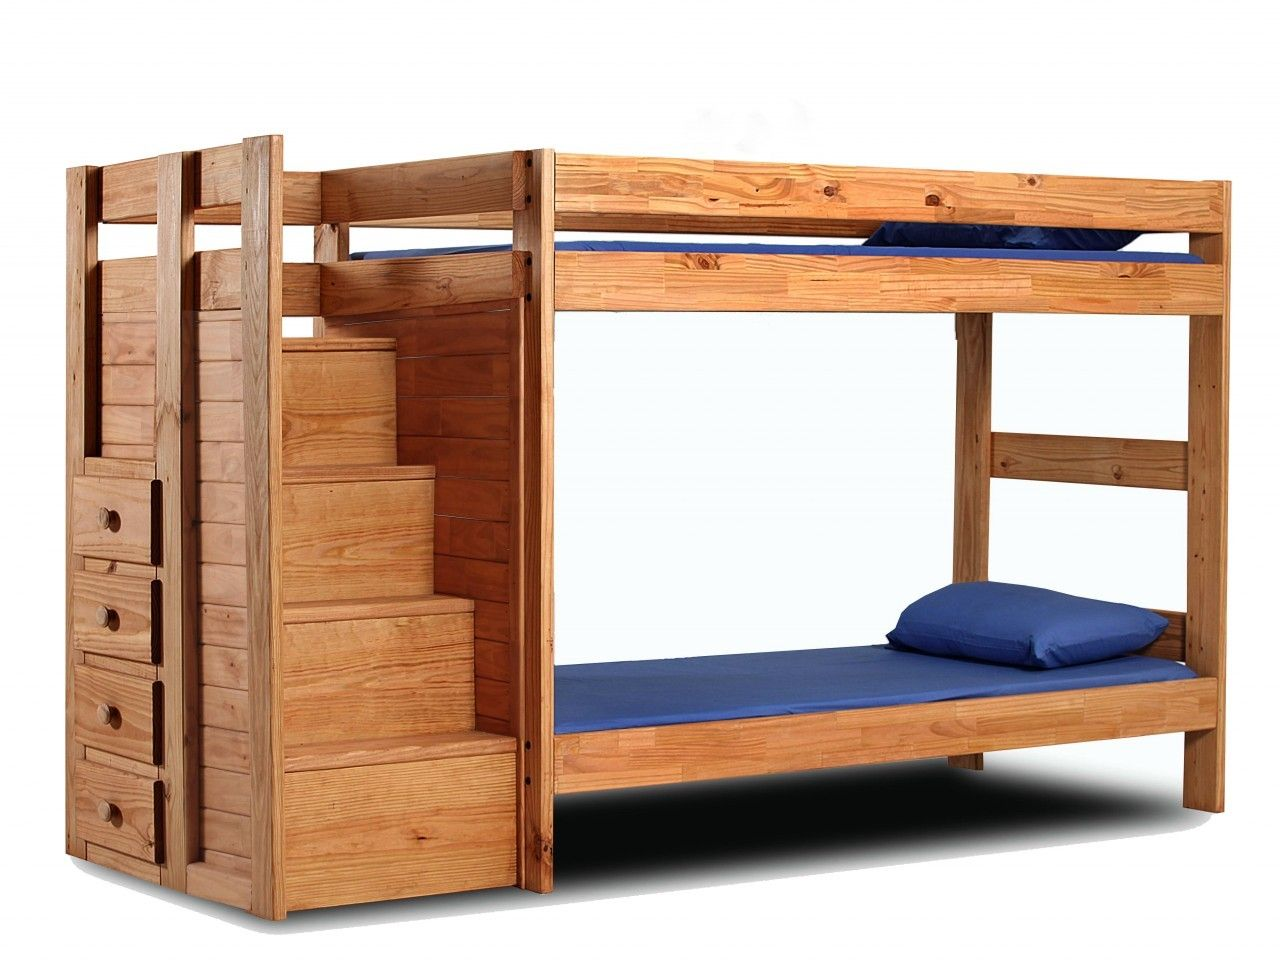 Twin Twin Staircase Bunk Bed Solid Pine Gothic Cabinet Craft Bunk Beds Bunk Beds With Stairs Wooden Bunk Beds